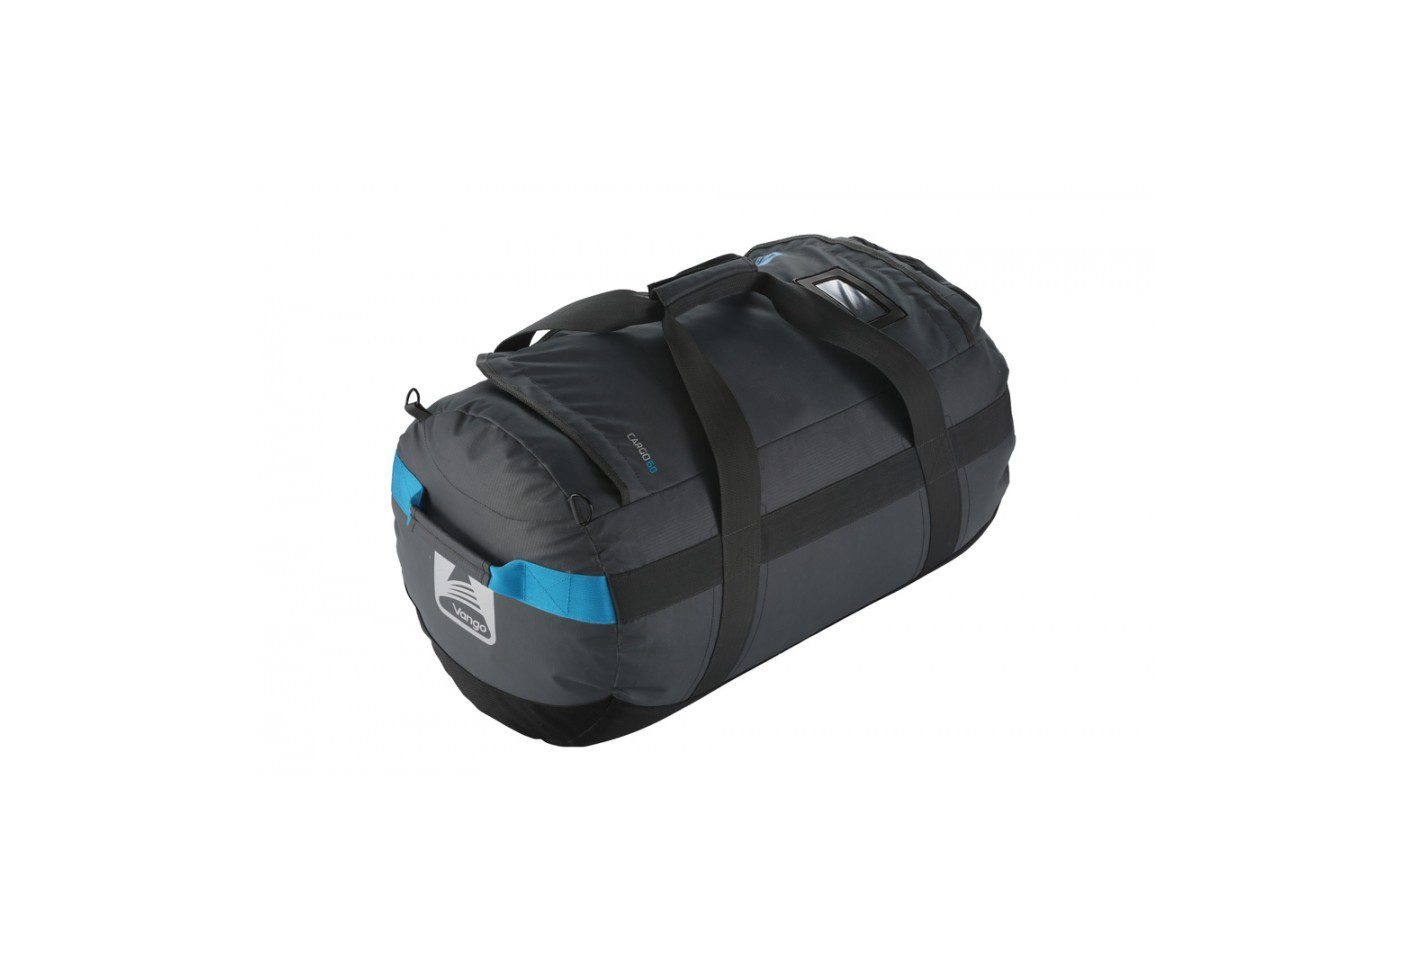 Vango Cargo II 60L carry bag